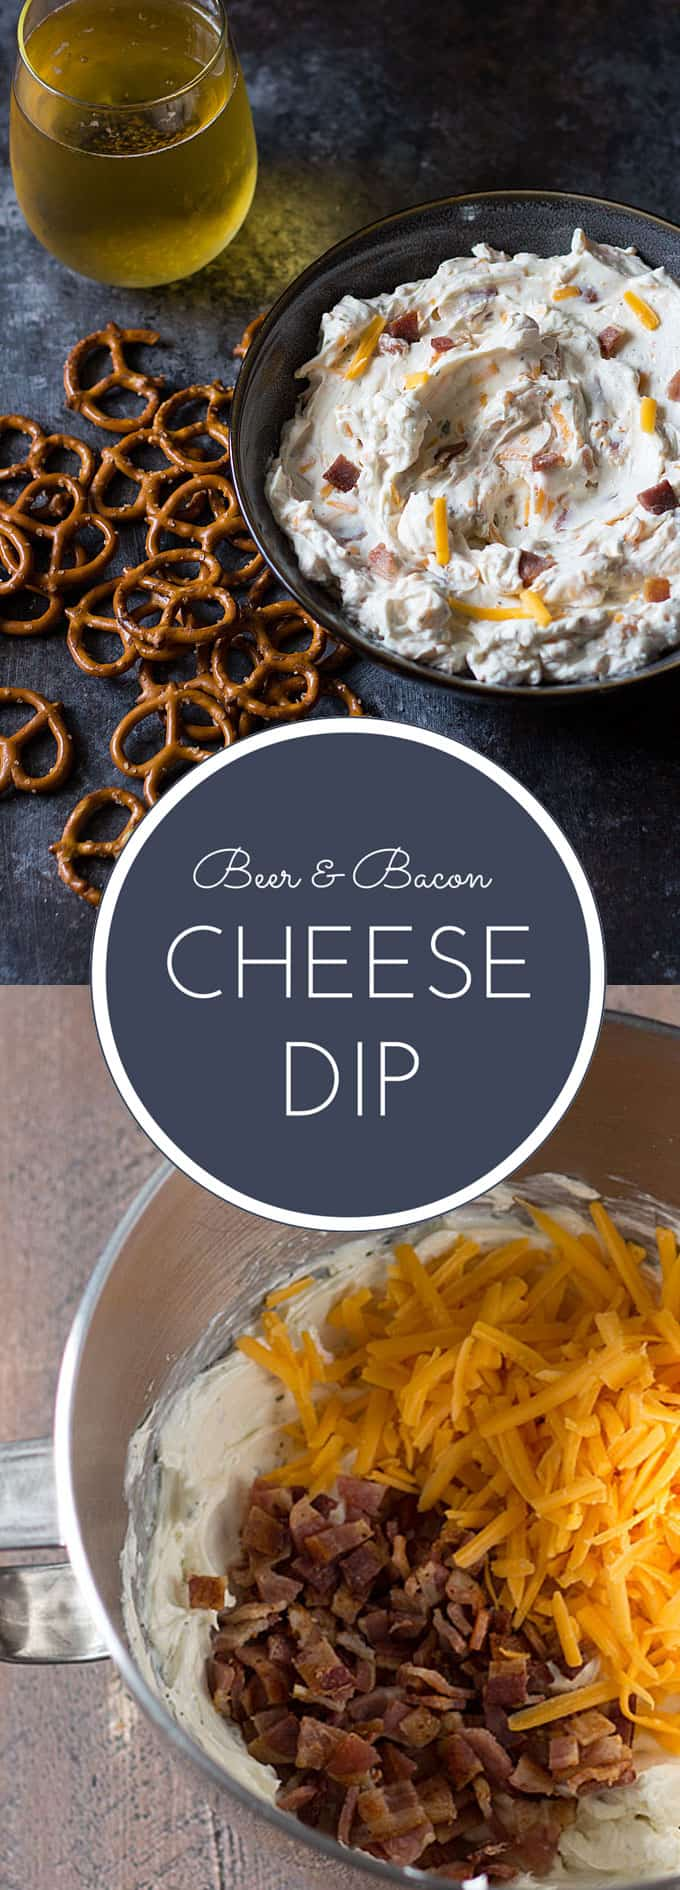 beer and bacon cheese dip the blond cook